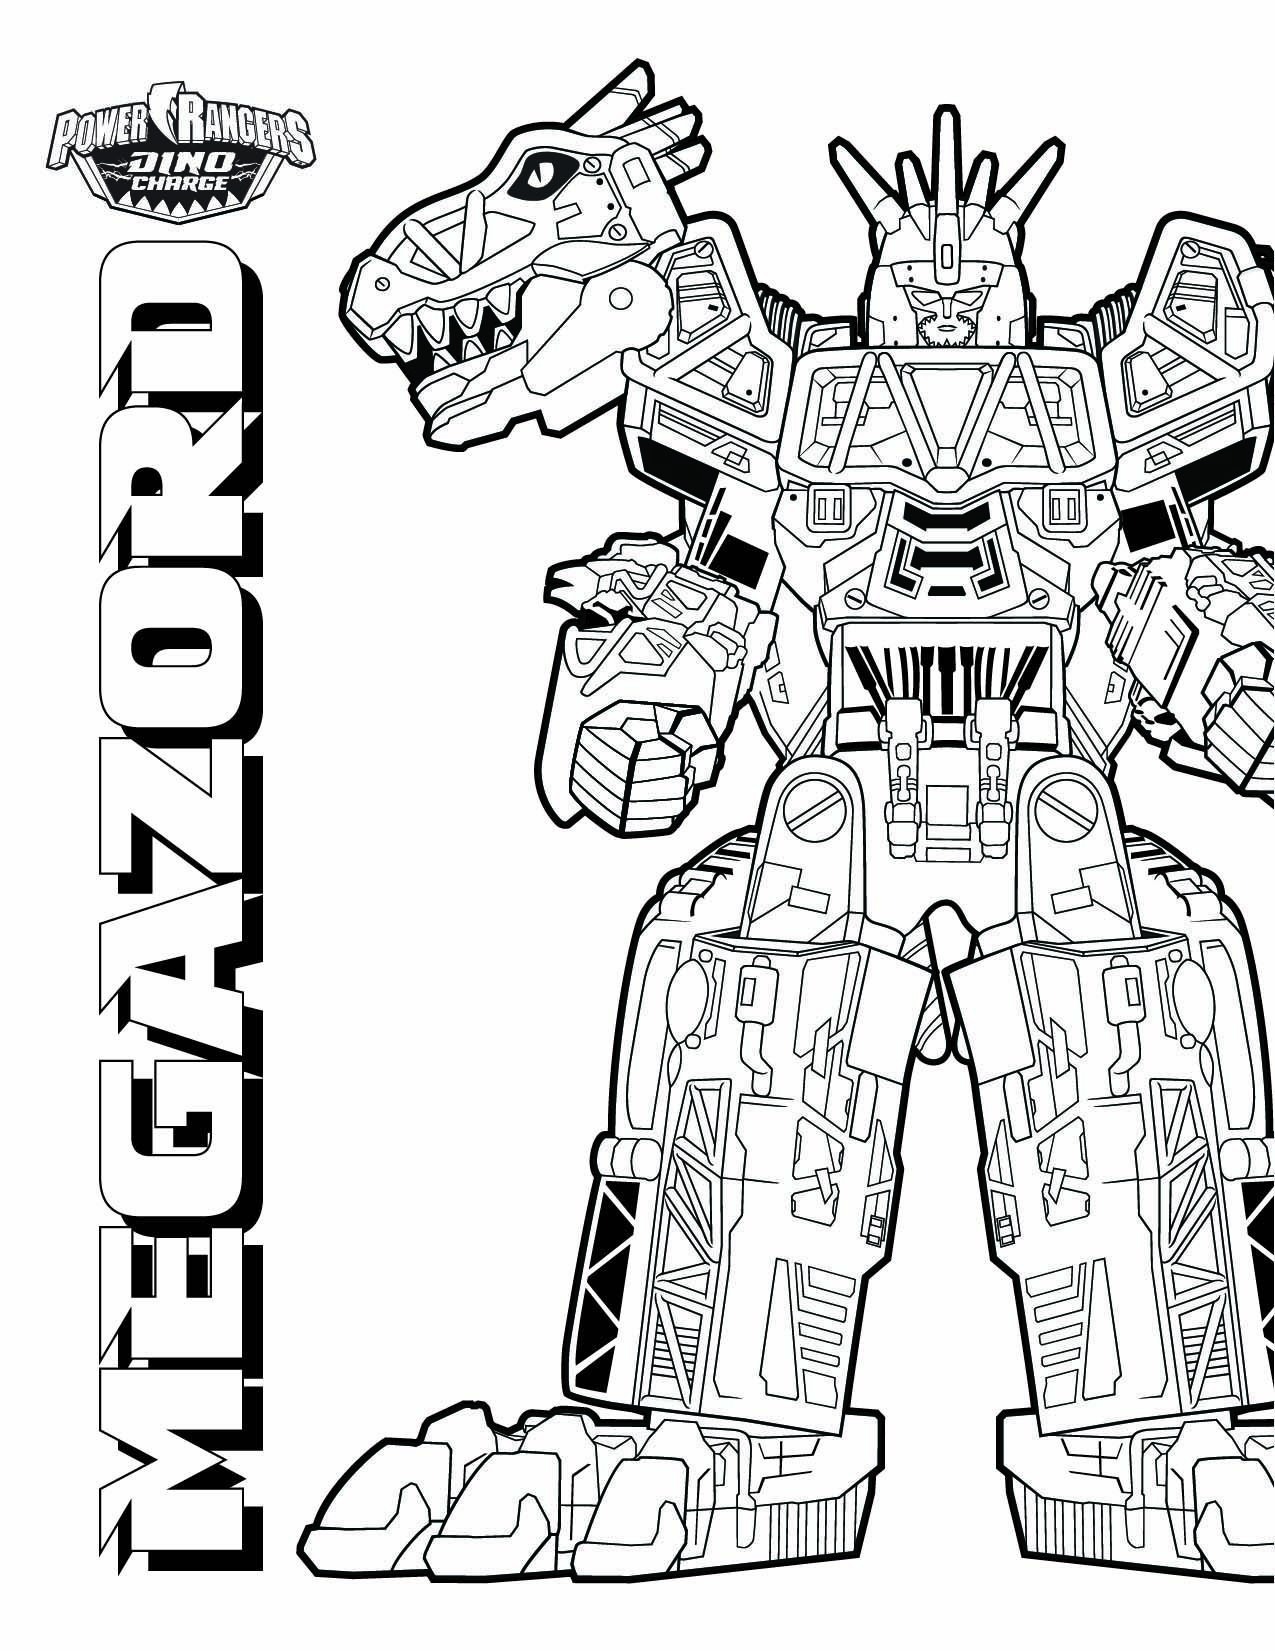 Pin By Power Rangers On Power Rangers Coloring Pages Power Power Rangers Coloring Pages Dinosaur Coloring Pages Train Coloring Pages